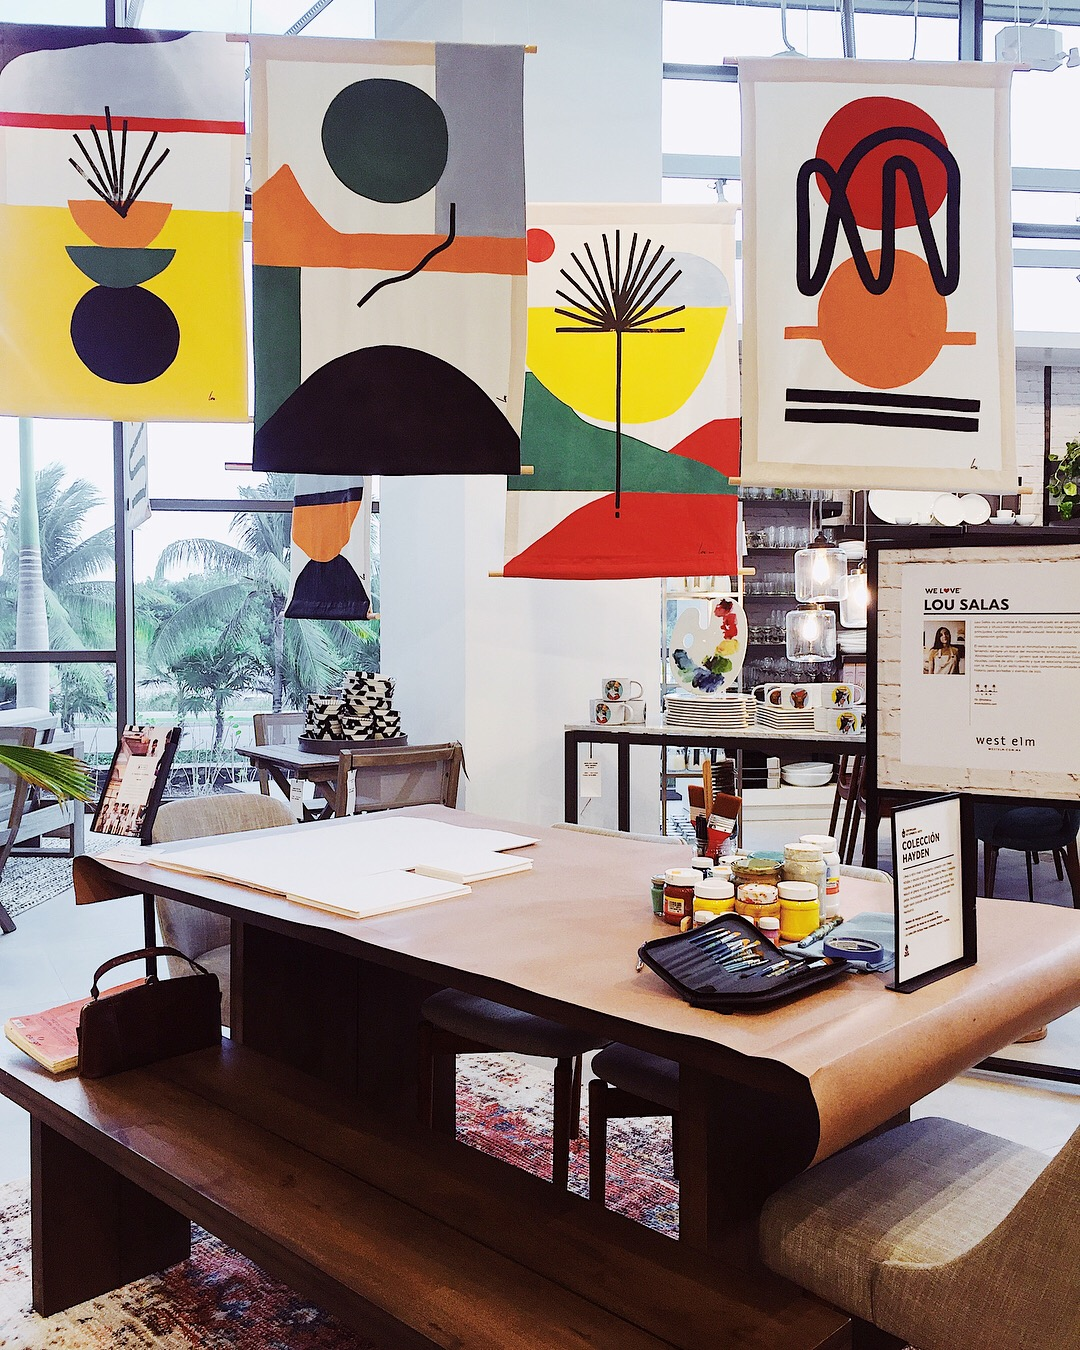 West Elm Puerto Cancun Mexico Art Installation by Hola Lou®